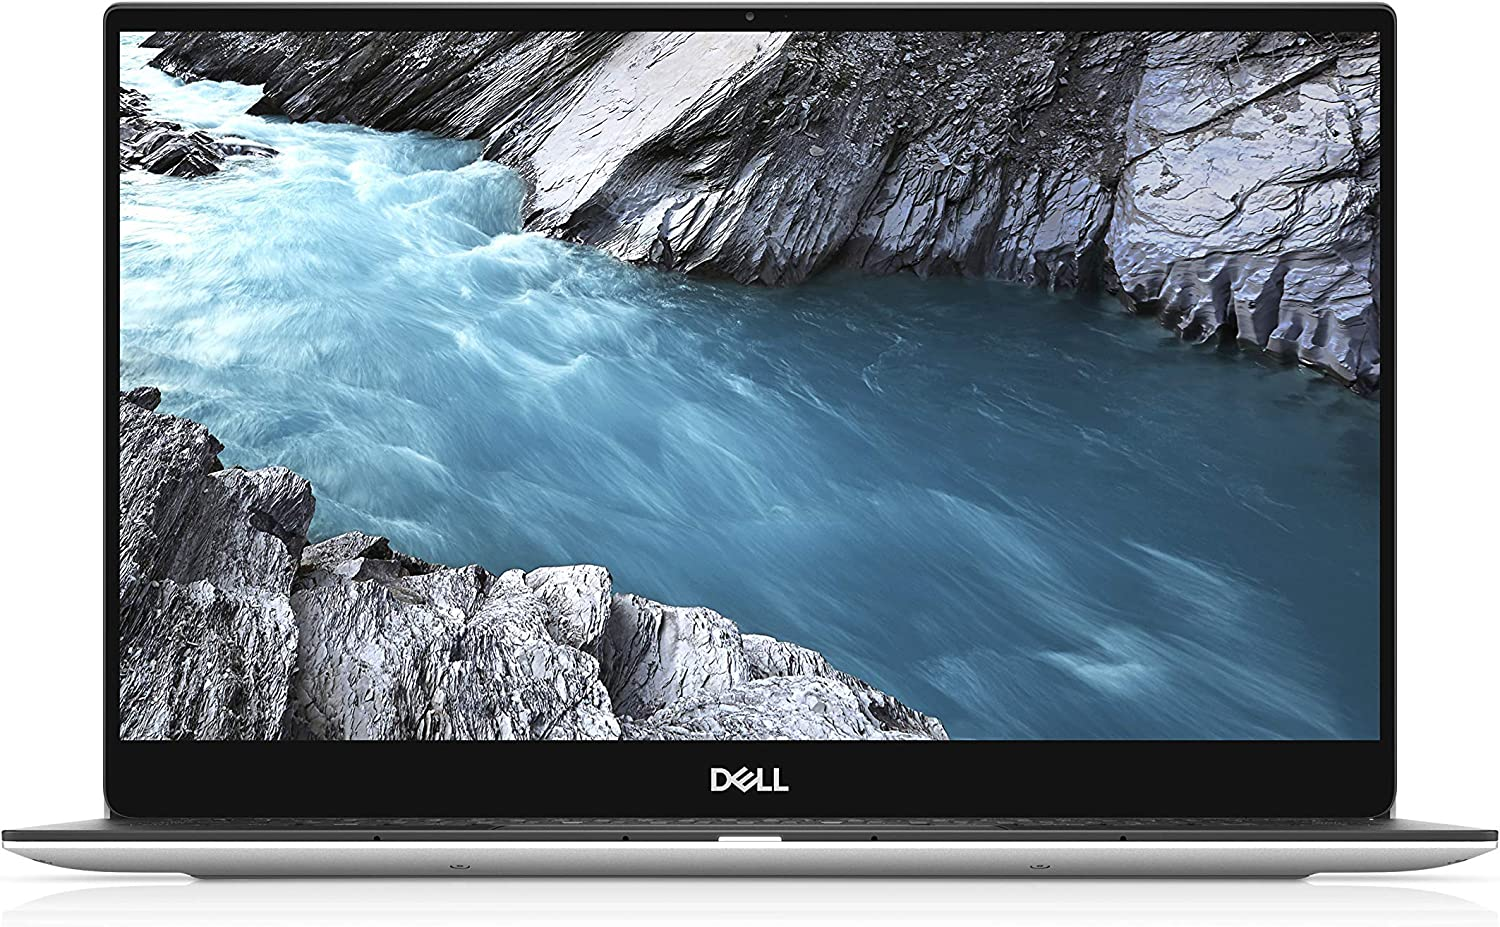 Dell XPS9380-7660SLV-PUS i7-8565U 8GB 256GB SSD 13.3 inches FHD Touchscreen Laptop (Renewed)